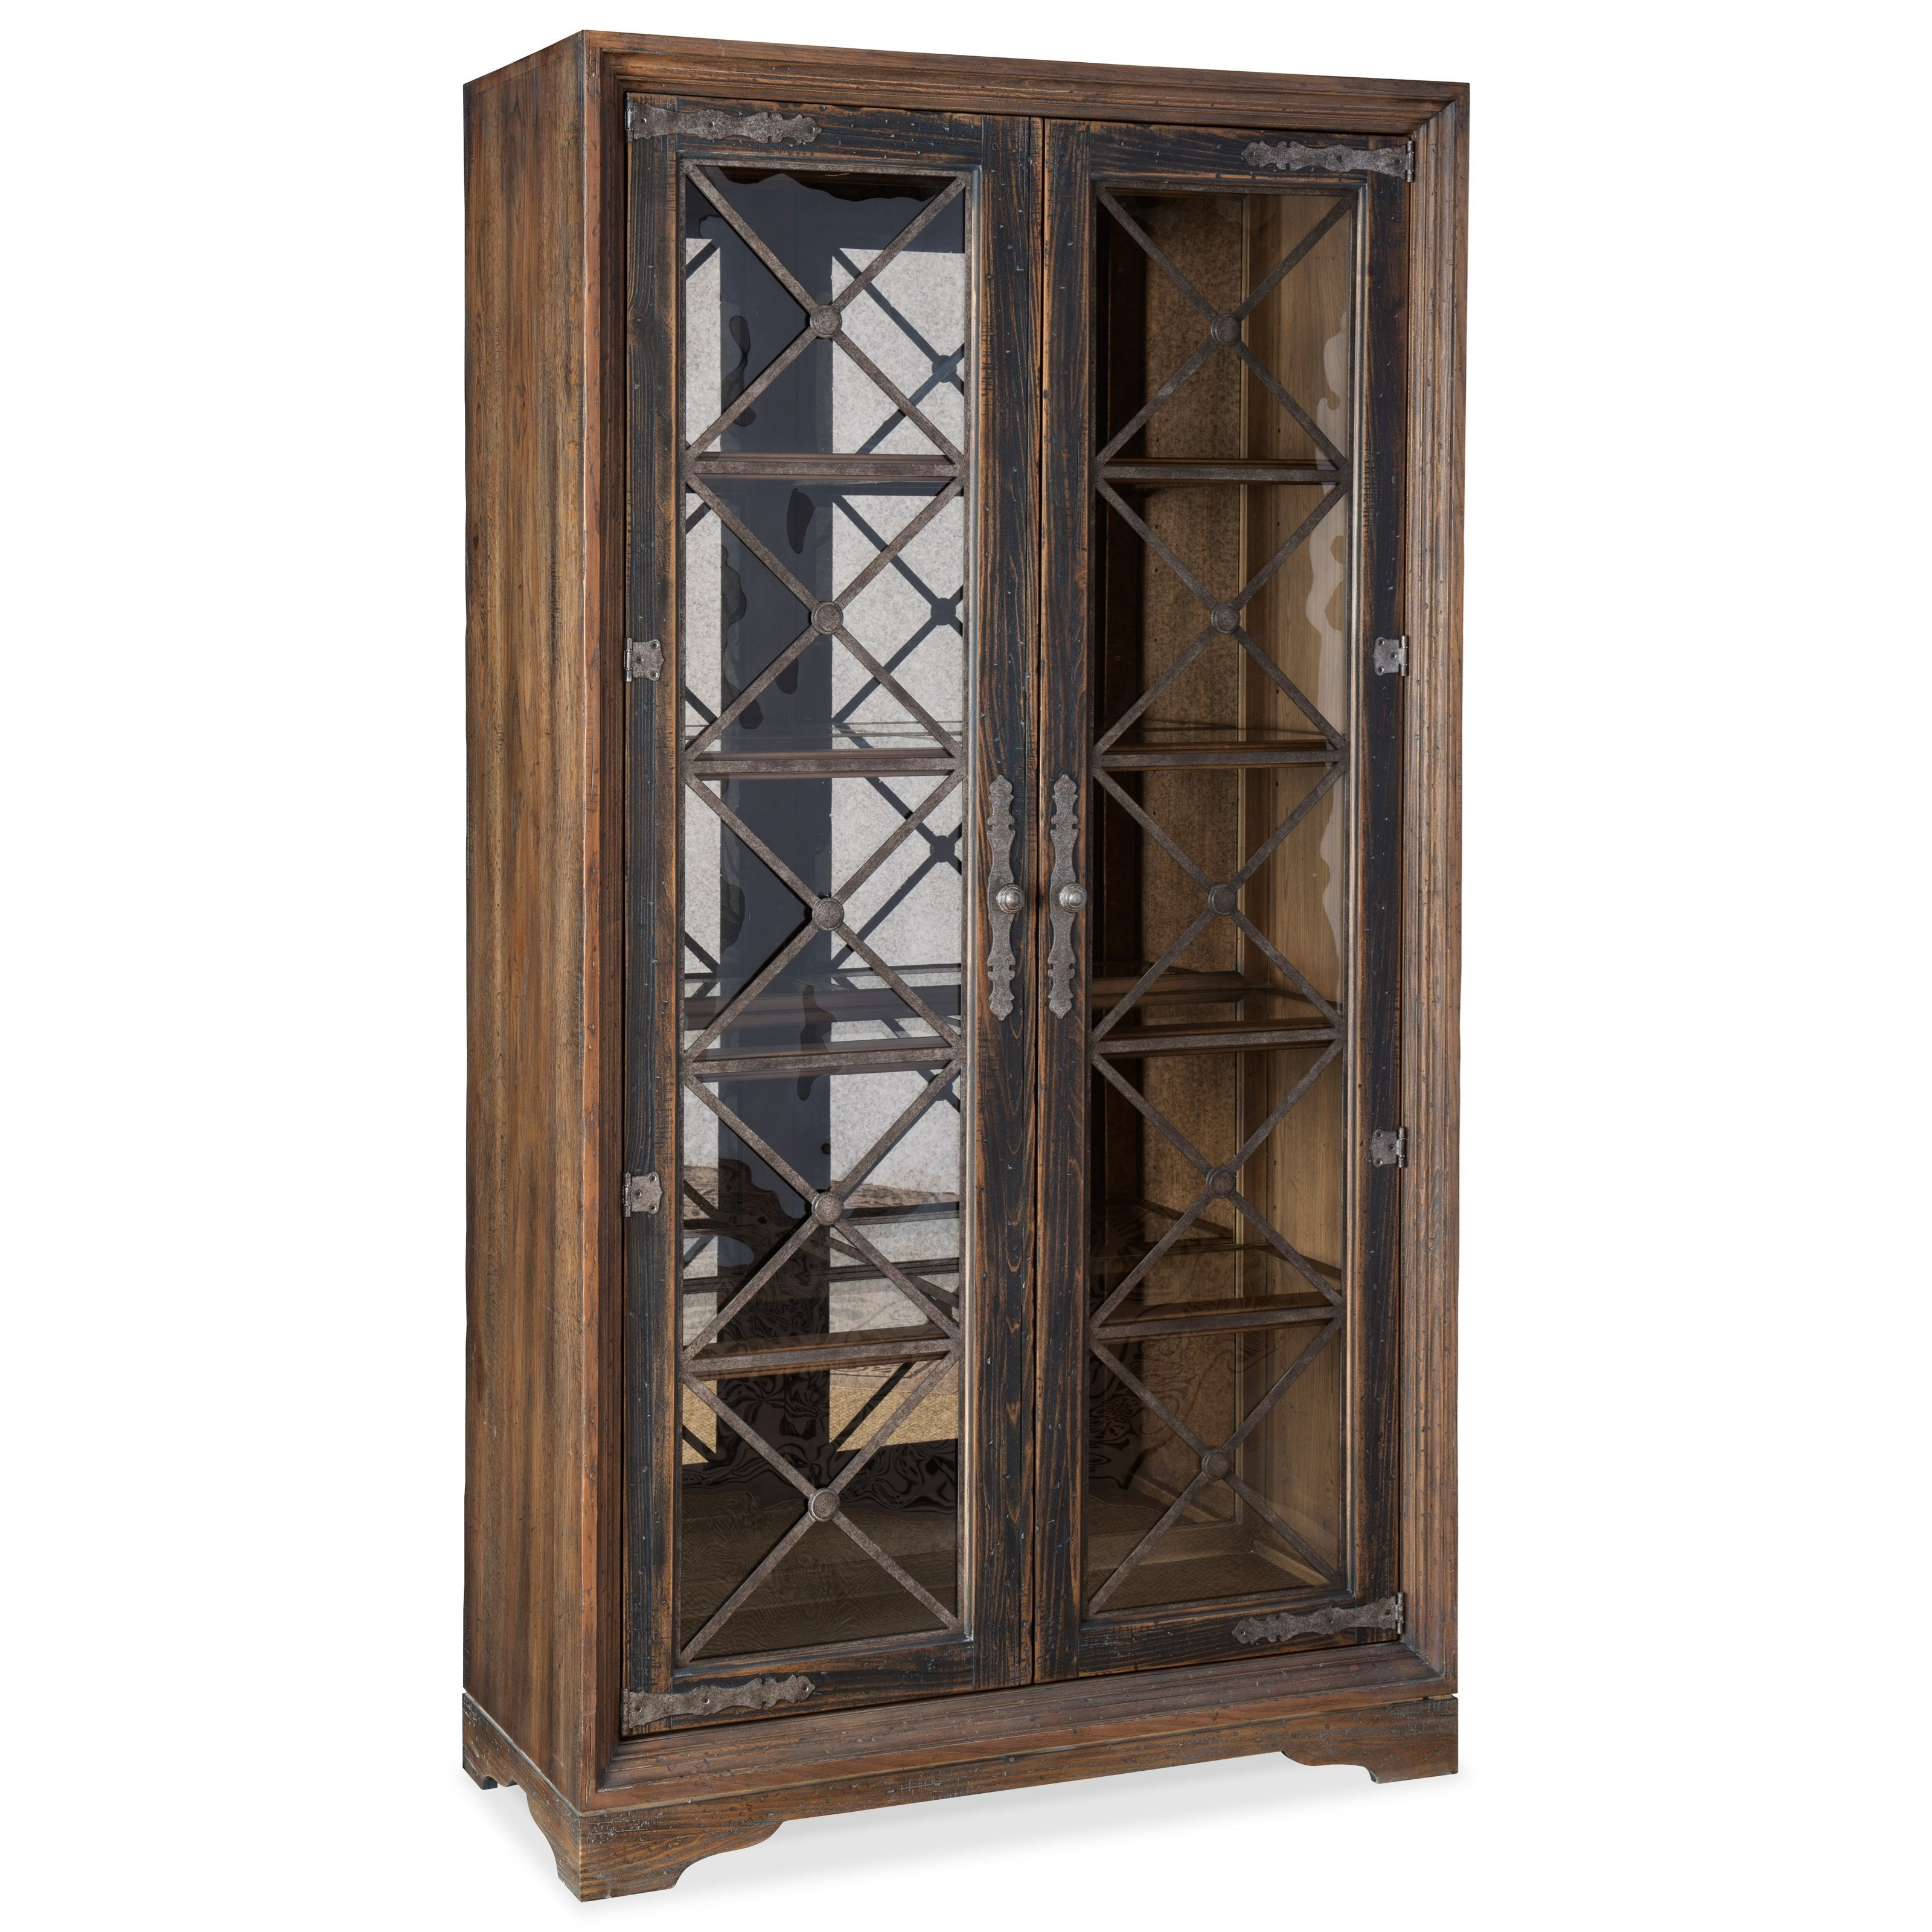 Charmant Hooker Furniture Hill CountrySattler Display Cabinet ...